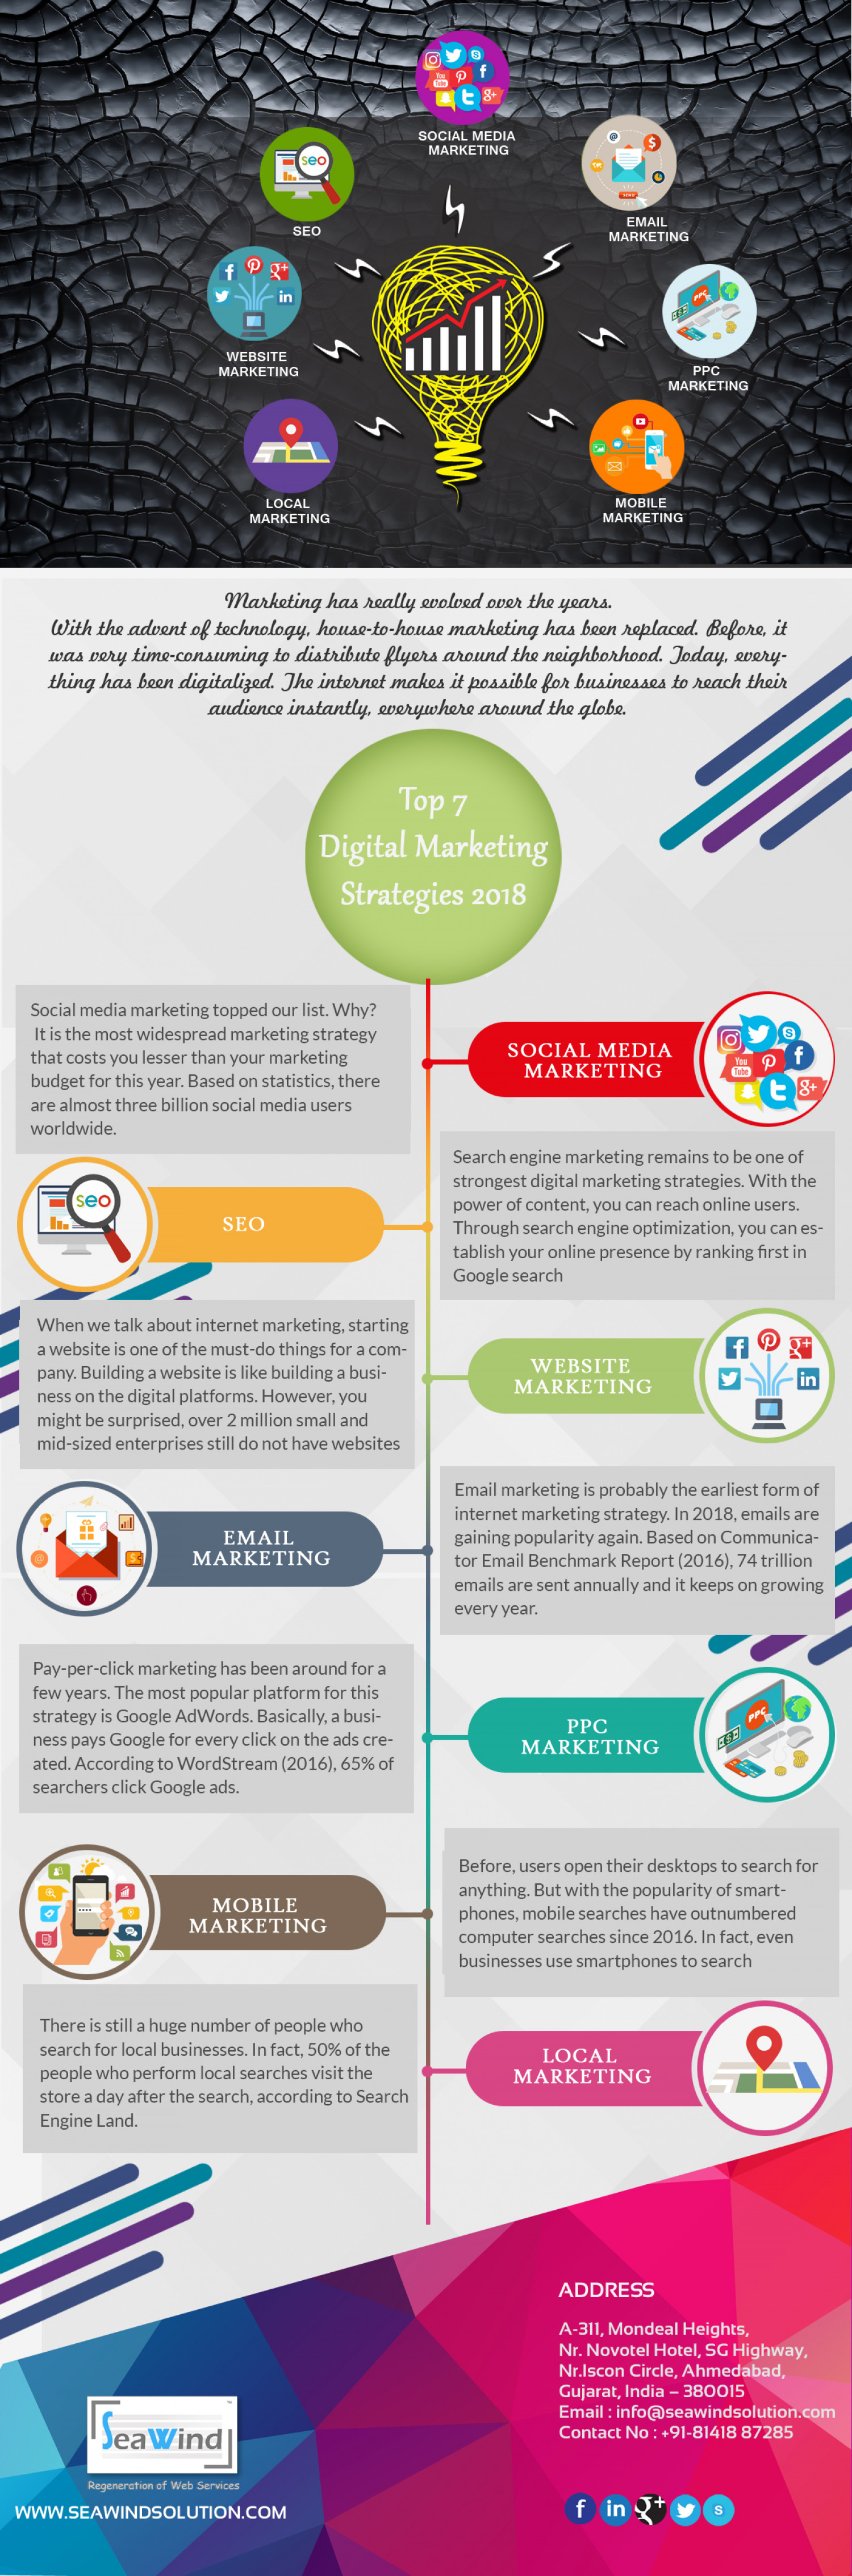 Top 7 Digital Marketing Strategies in 2018 Infographic